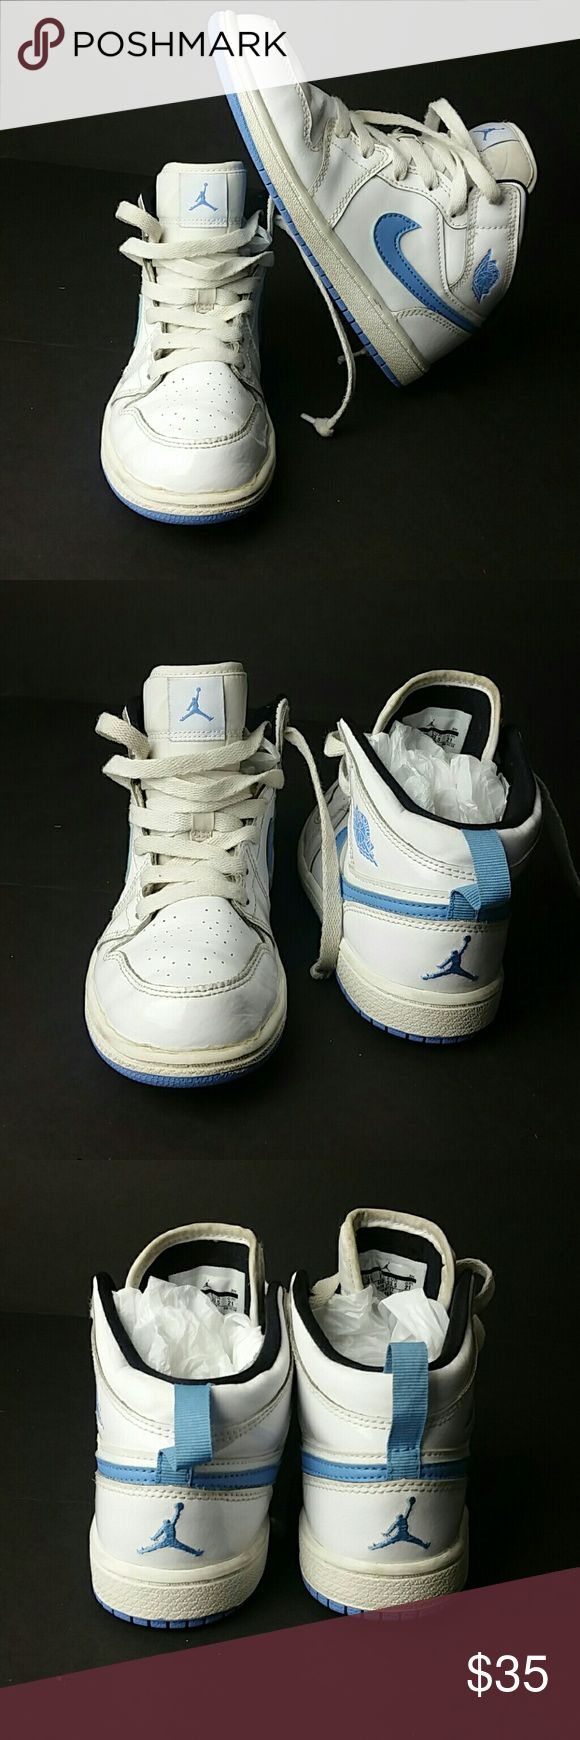 AIR JORDAN 1 MID YOUTH SHOES IN GOOD CONDITION   YOUTH SIZE 2Y BIG KIDS   SKE # UP Air Jordan Shoes Sneakers